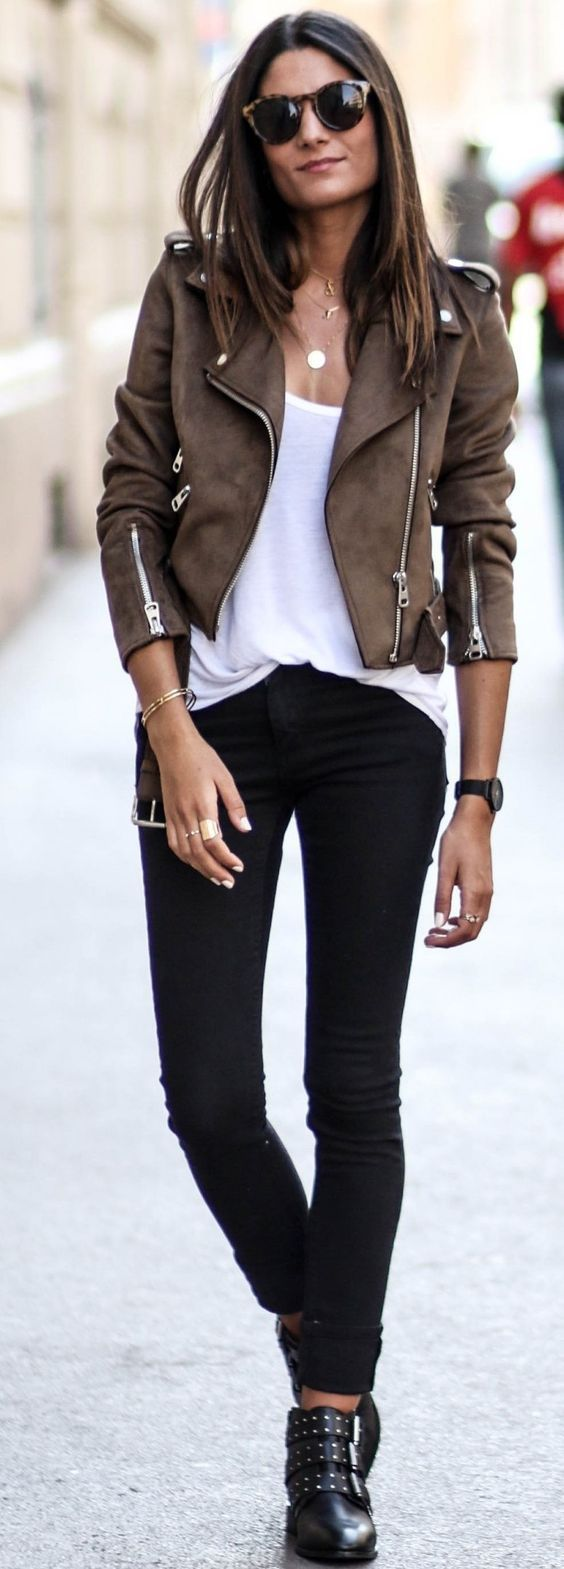 50 Trending Black Jeans Ideas To Upgrade Your Wardrobe - Trend To Wear